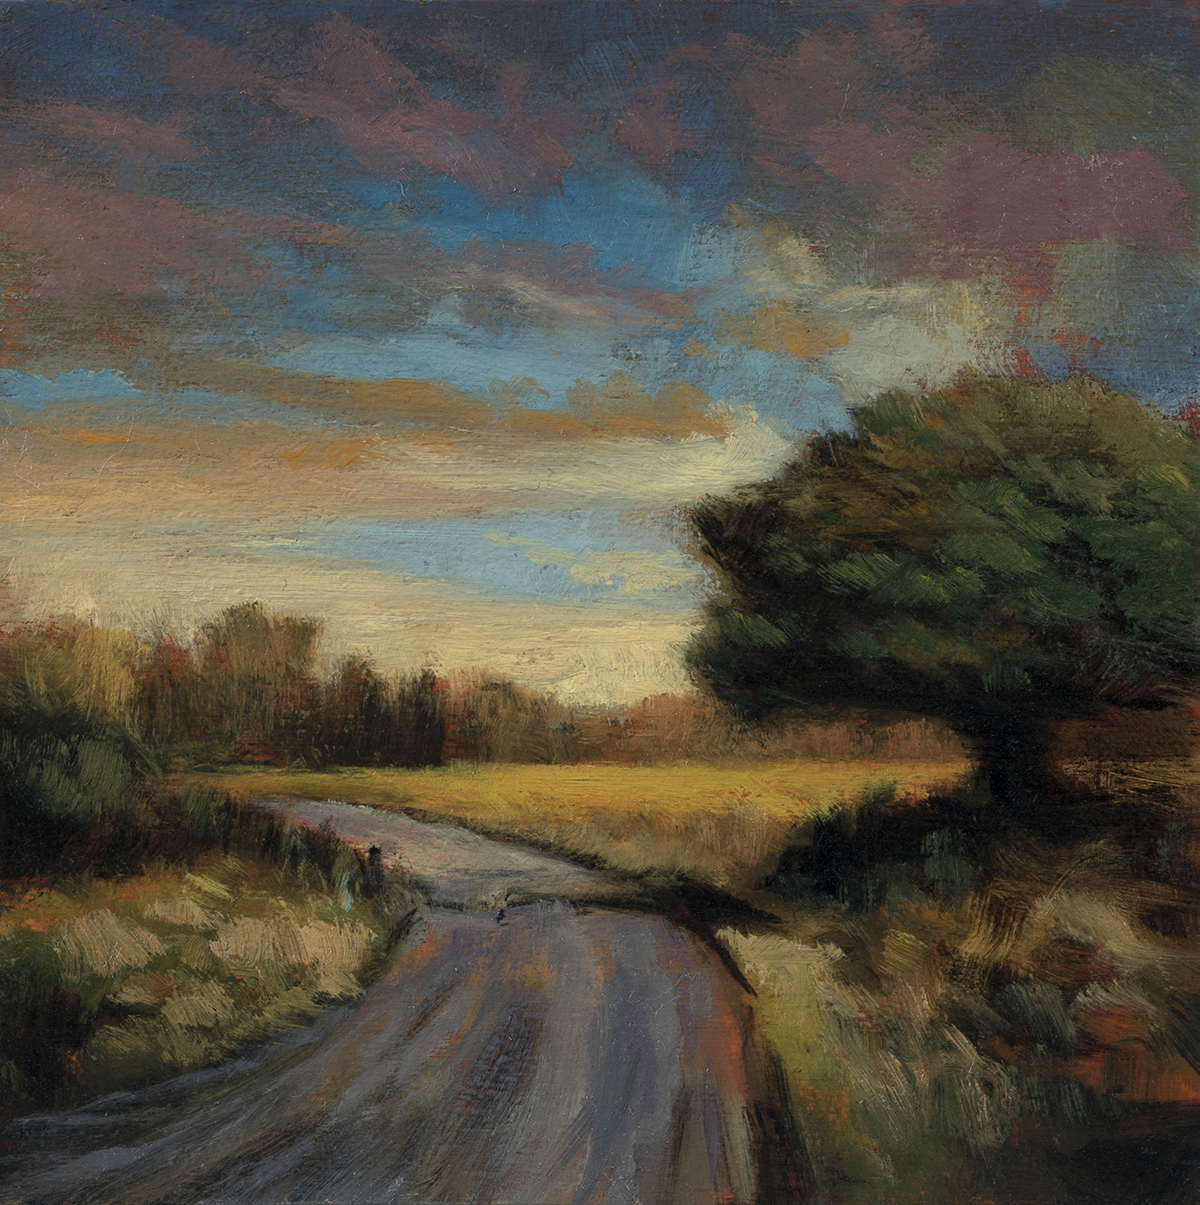 Autumn Passage by M Francis McCarthy - 5x5 Oil on Wood Panel